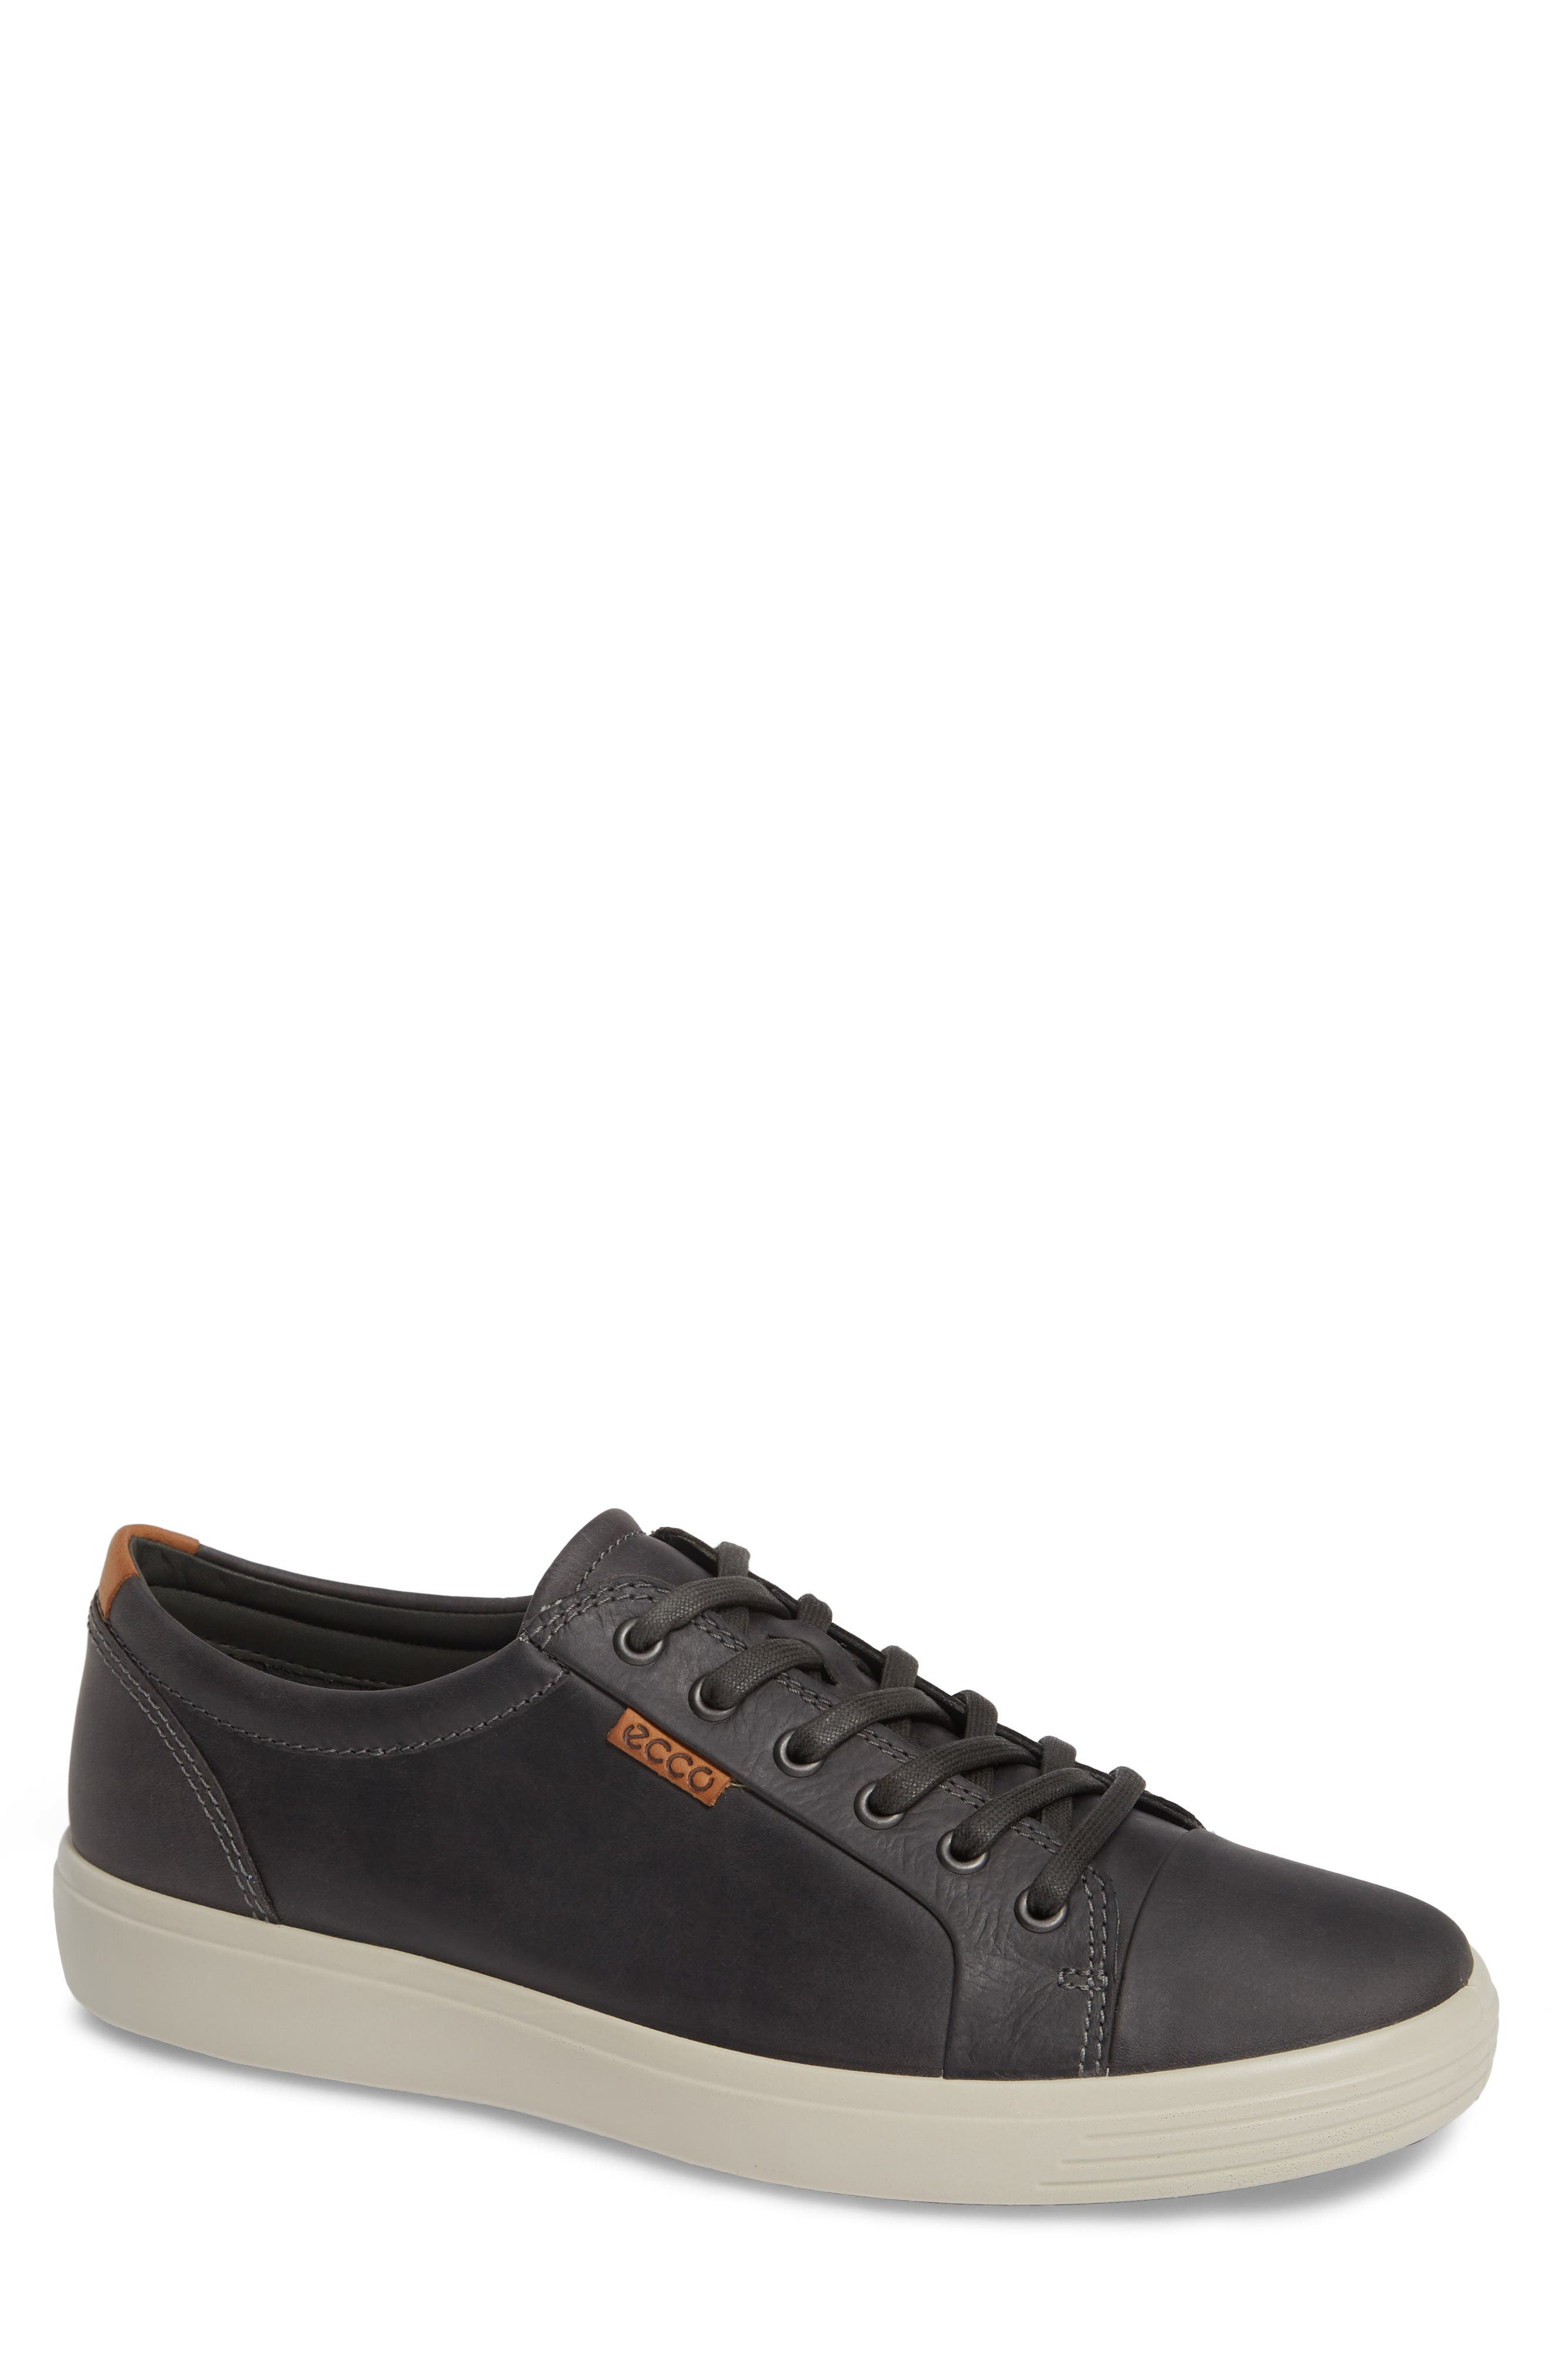 ECCO,                             Soft VII Lace-Up Sneaker,                             Main thumbnail 1, color,                             GREY OILED NUBUCK